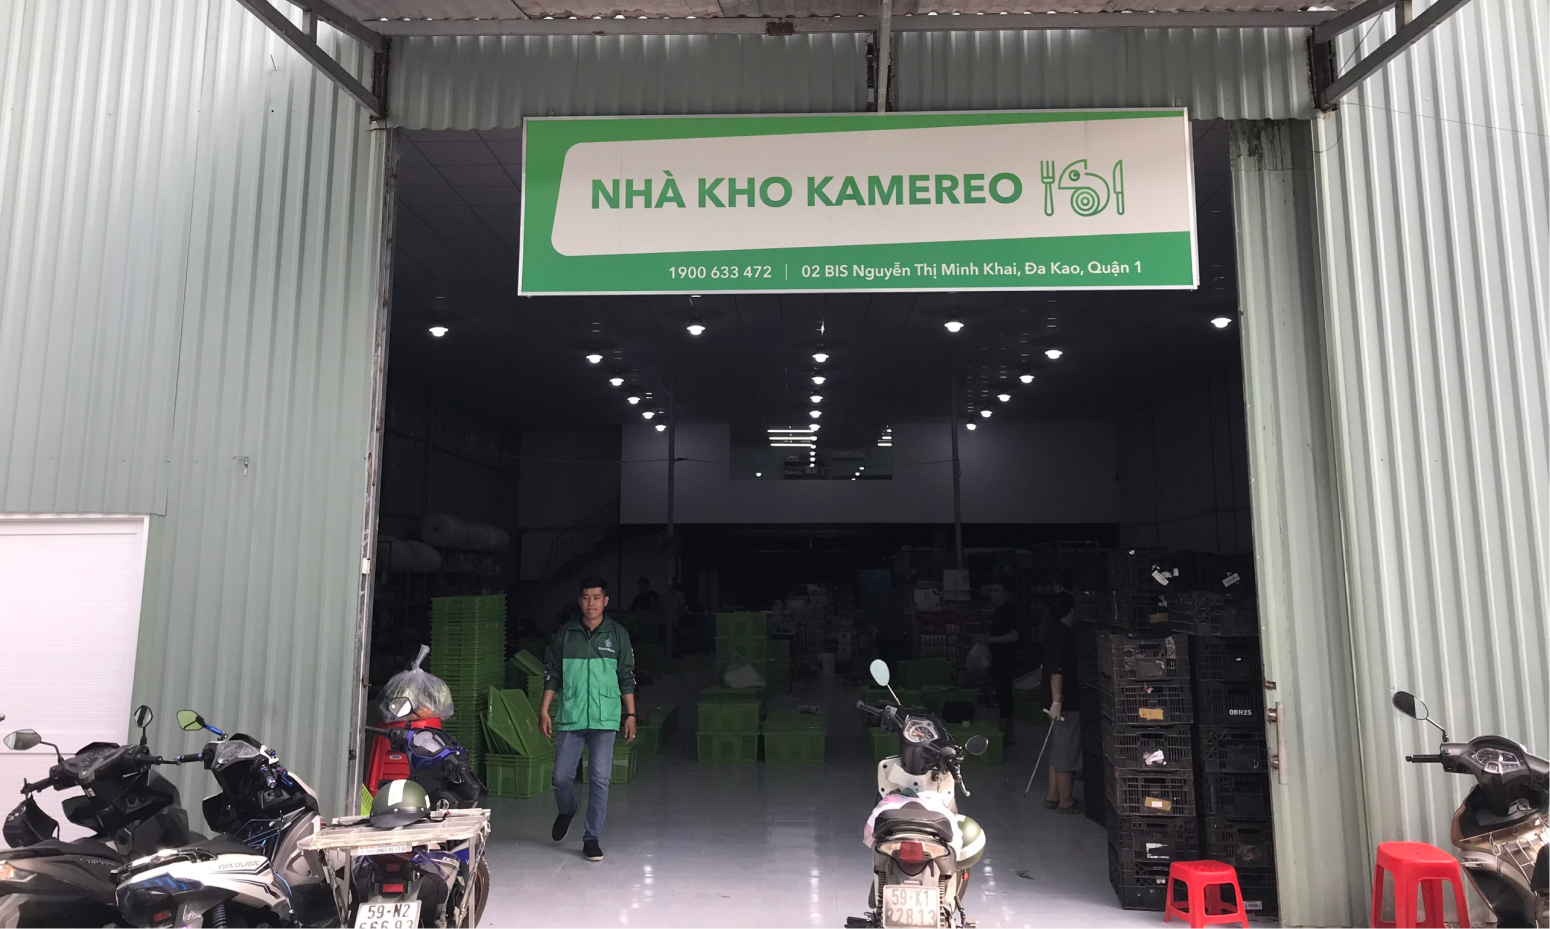 One of Kamereo's warehouses for fresh farm products